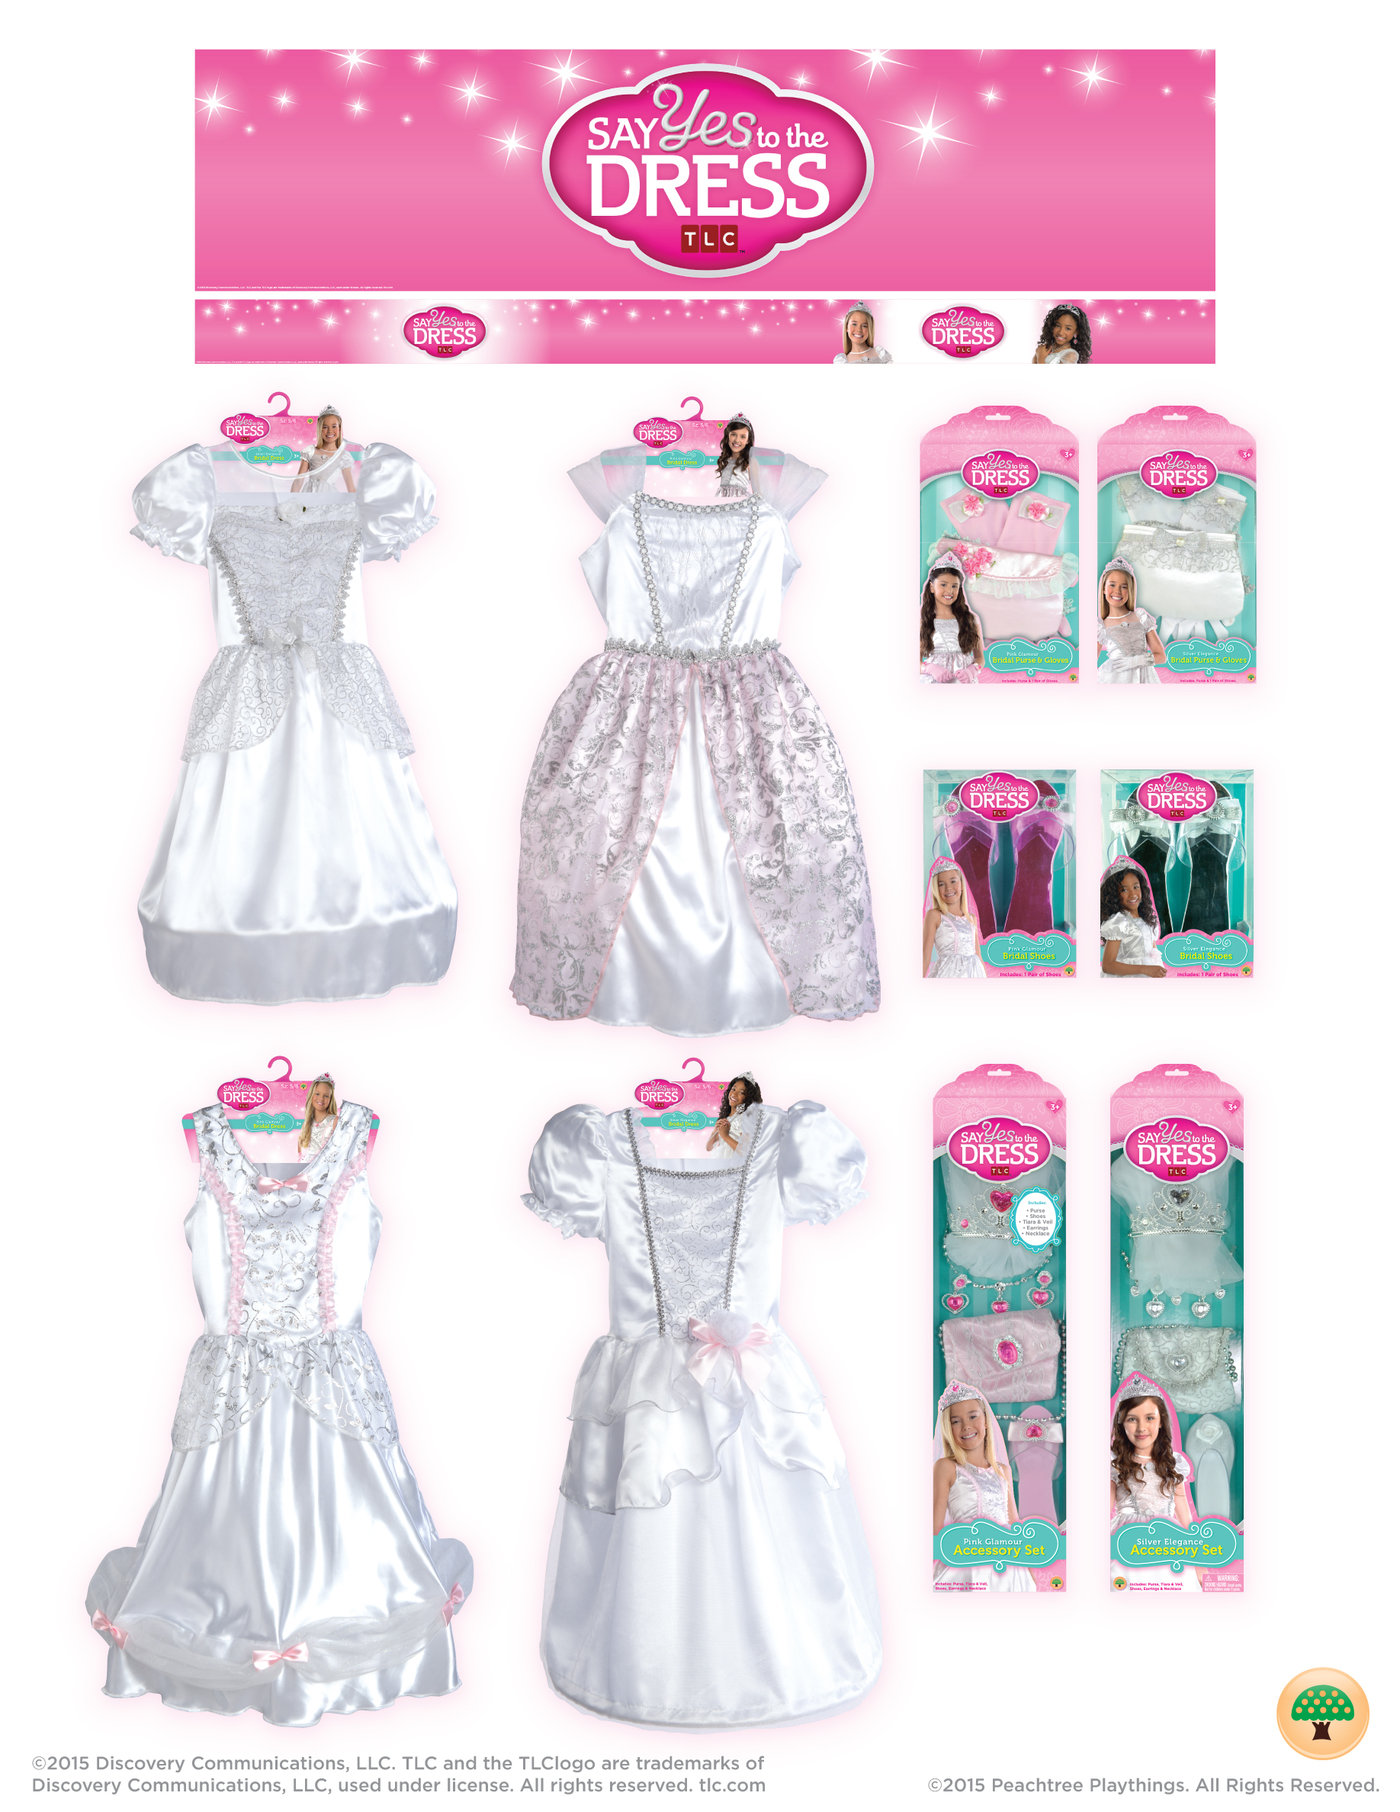 Say Yes To The Dress Toys R Us 4 Section Fall 2015 By Denise Sanders At Coroflot Com